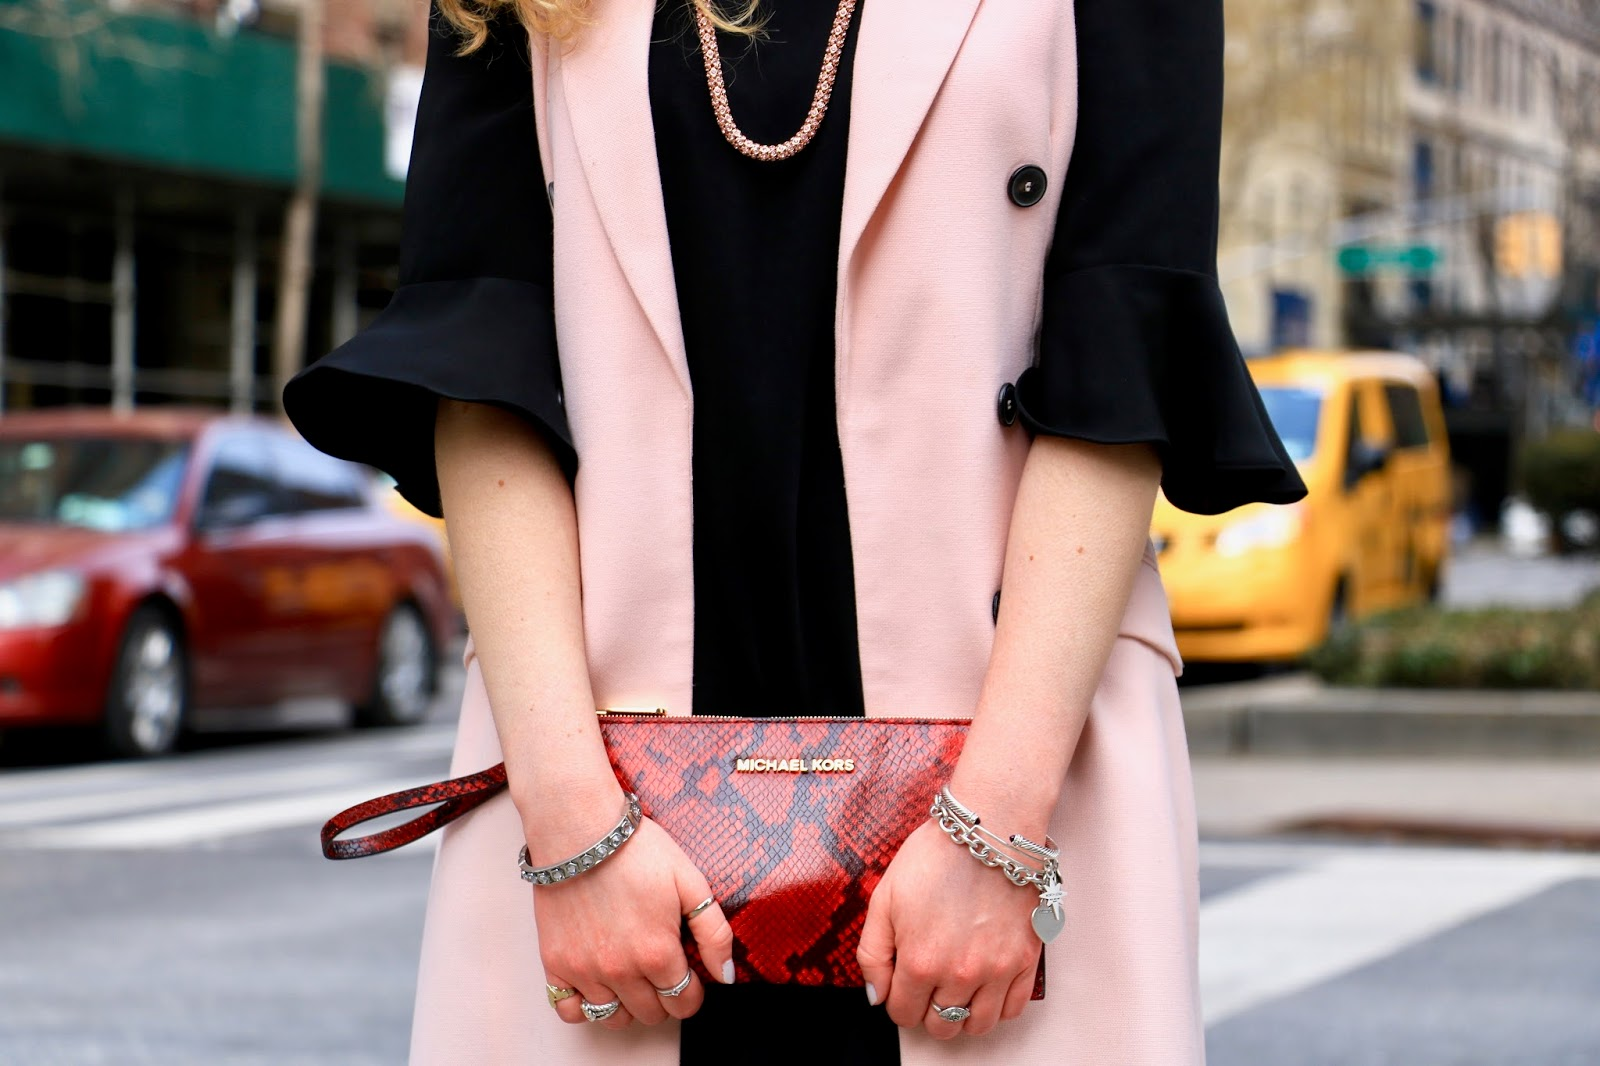 Nyc fashion blogger Kathleen Harper's red snakeskin Michael Kors clutch